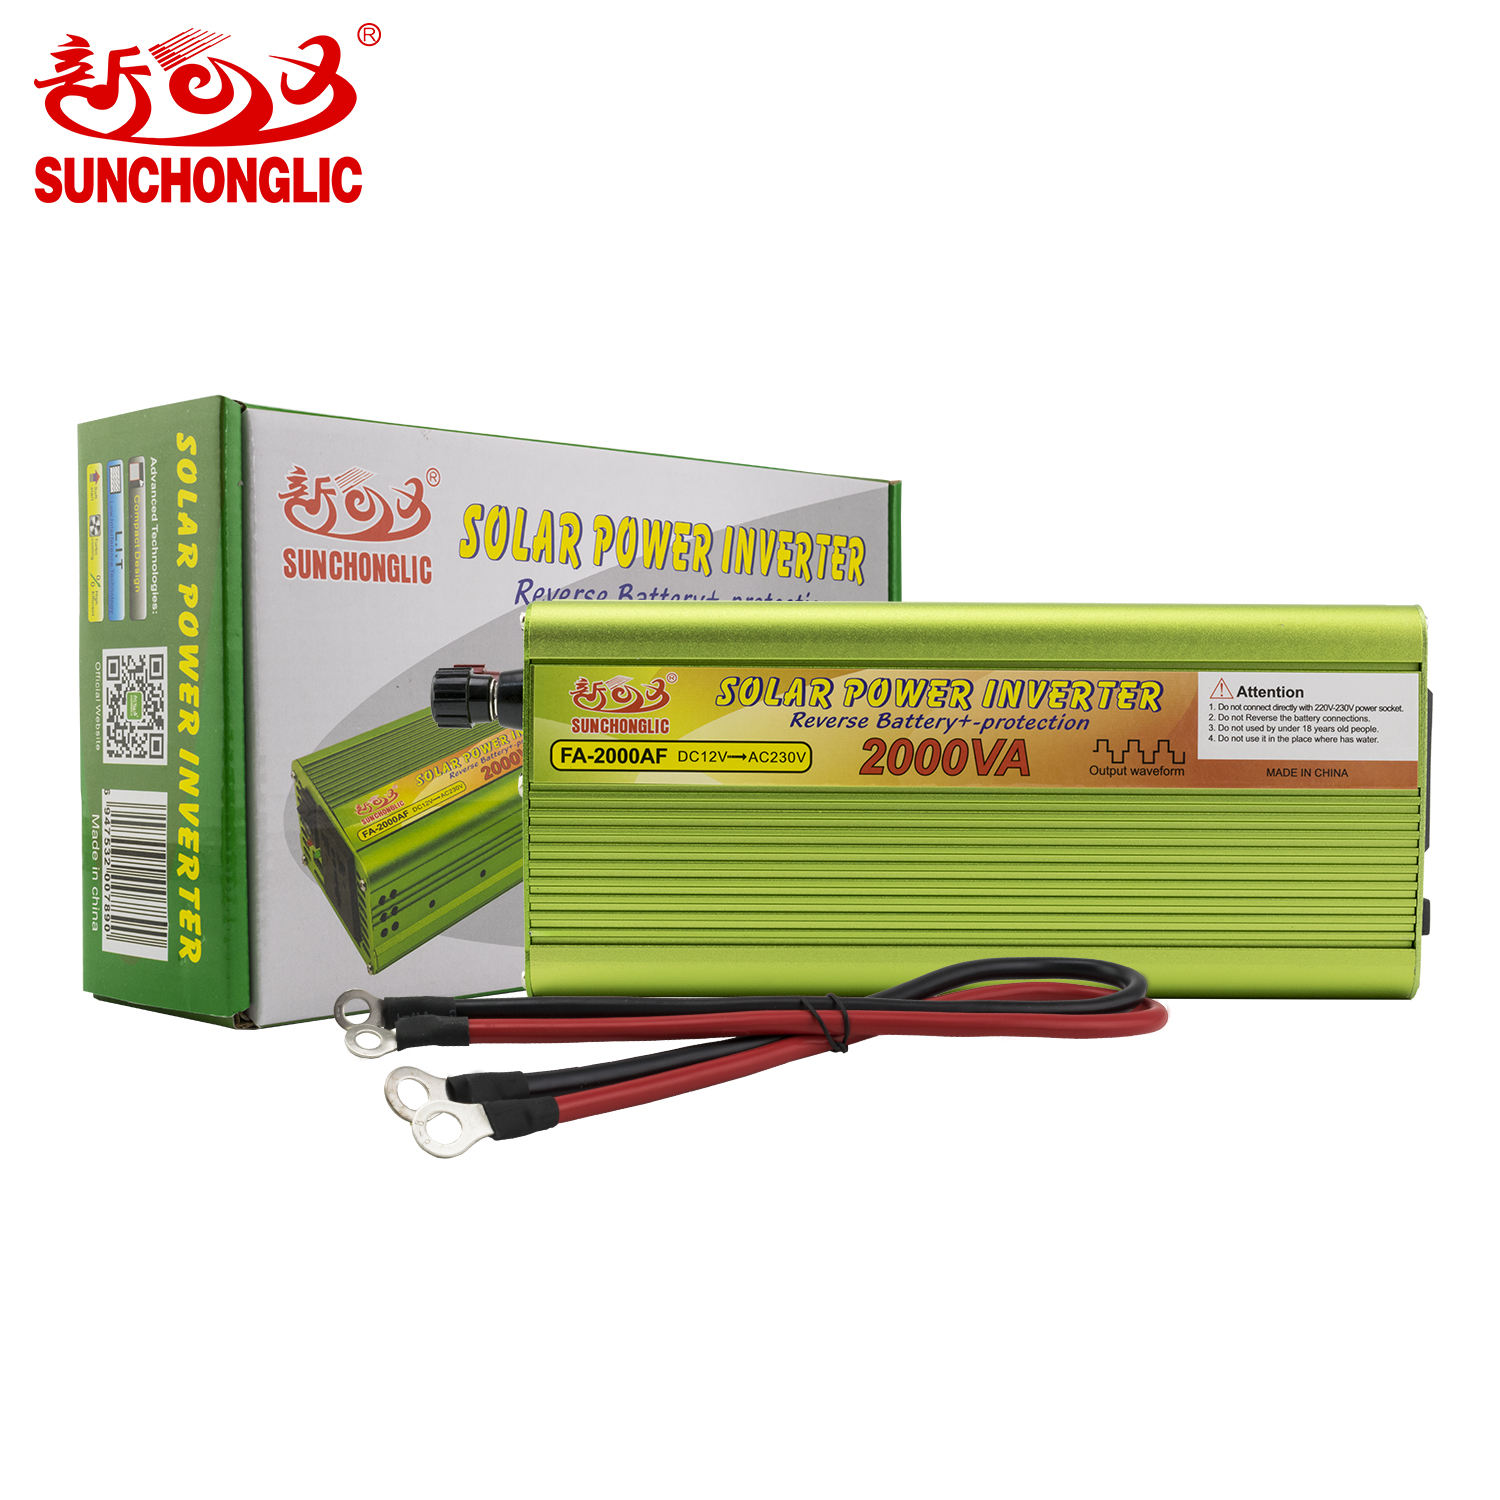 Sunchonglic 2kw 12 volt dc 220 volt ac 2000 watt 12V 220V off grid 2000VA 2000W Inverter Power Inverter